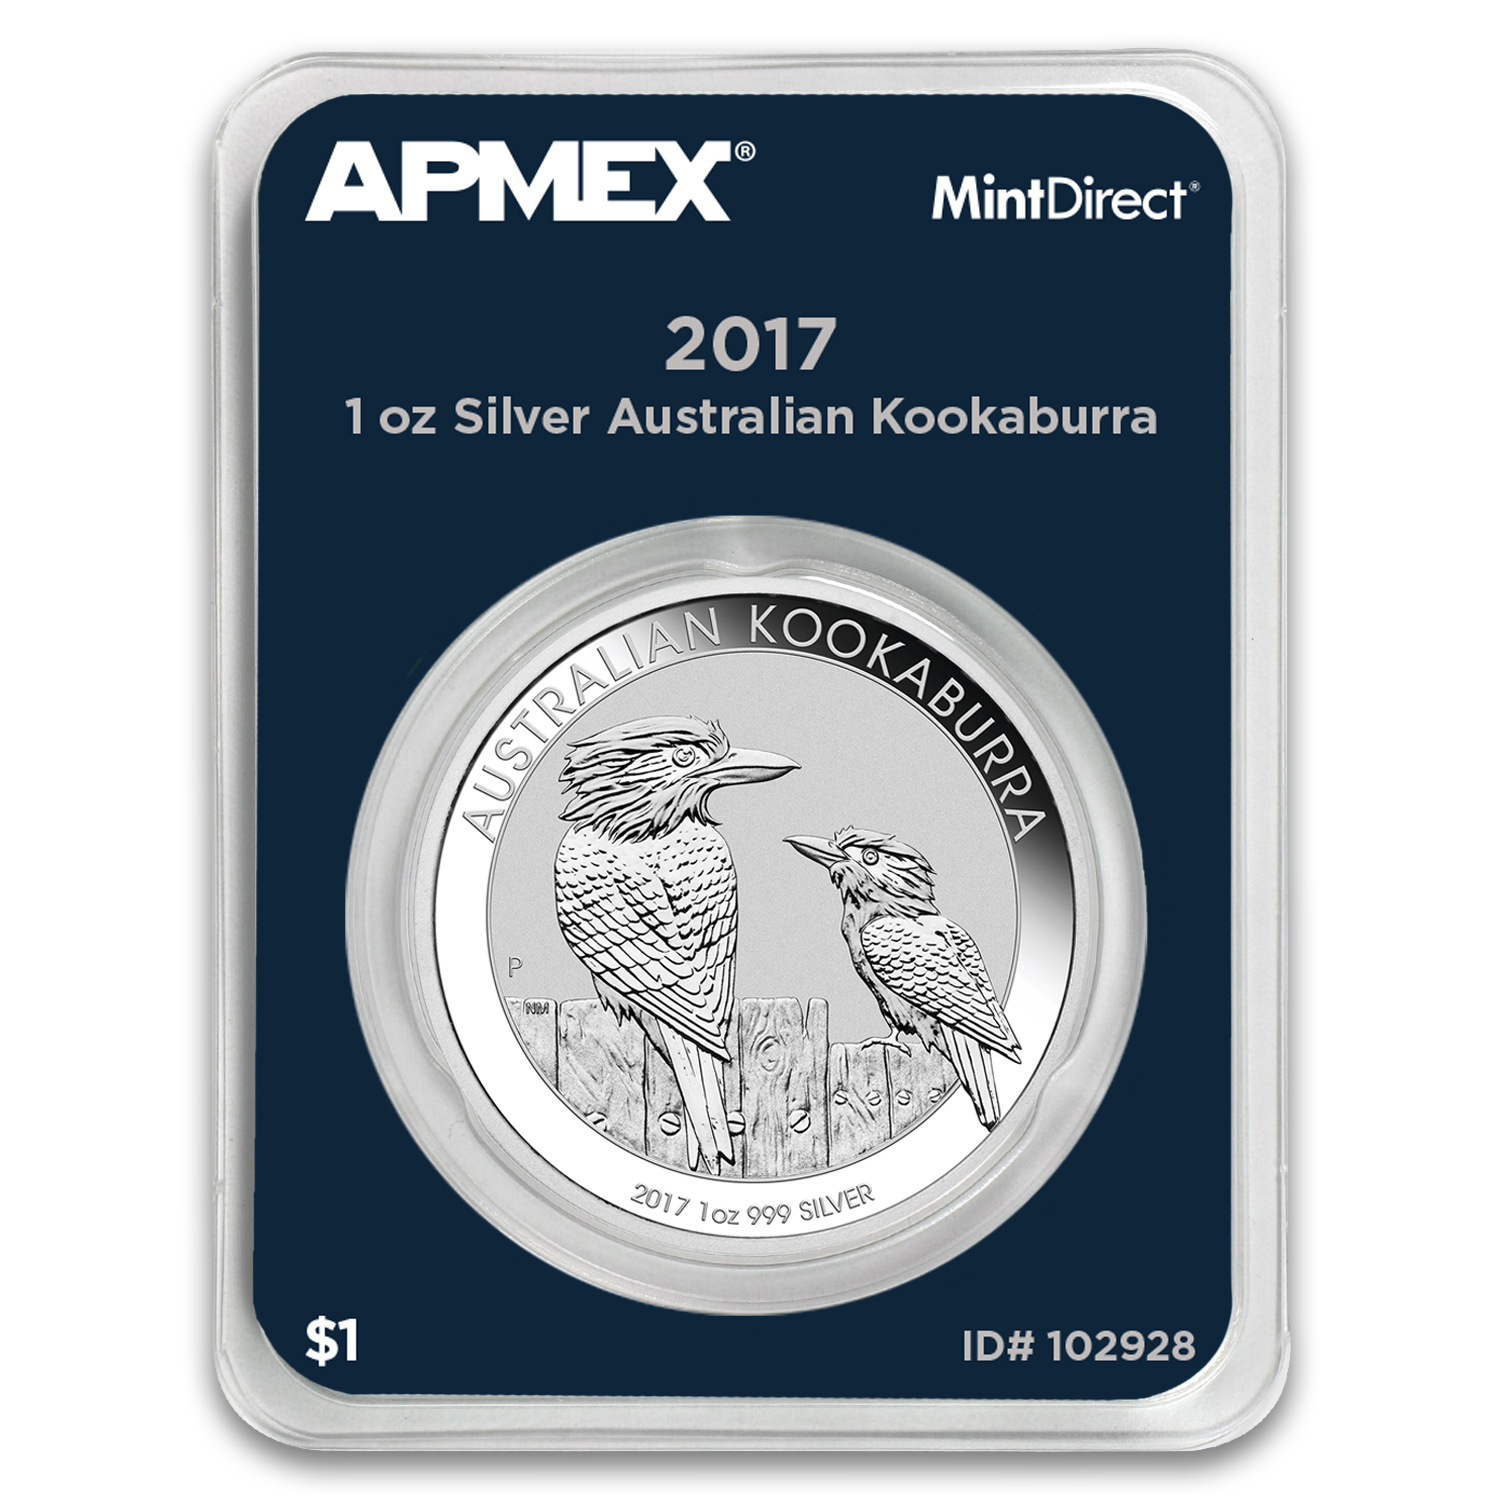 2017 Australia 1 oz Silver Kookaburra (MintDirect® Single)